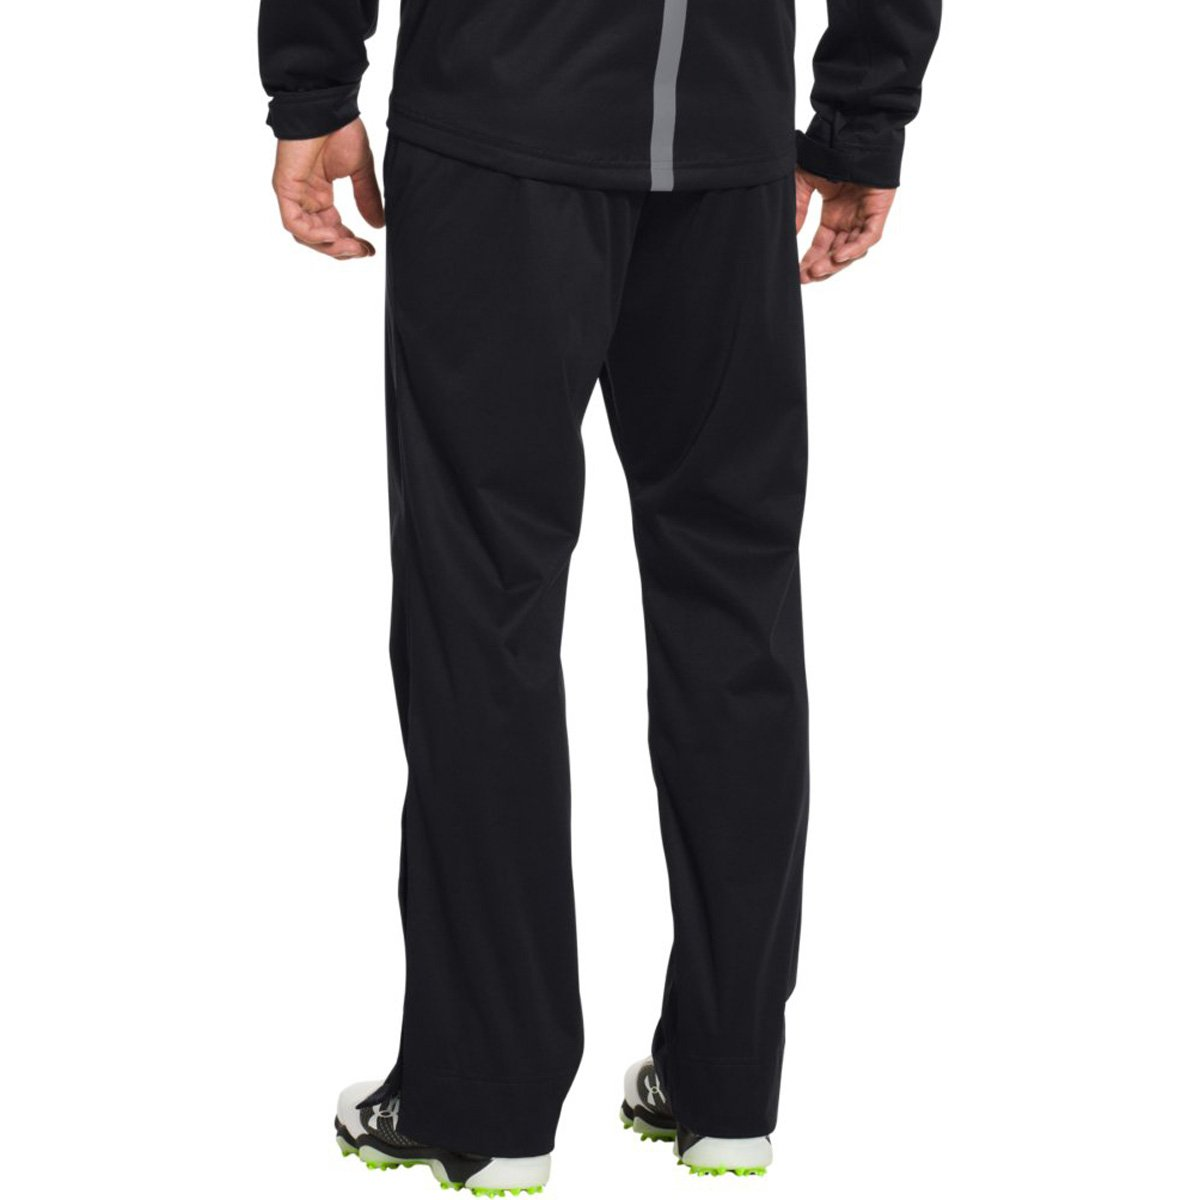 57be0e3ff Under Armour Mens ArmourStorm Rain Trouser: Amazon.co.uk: Sports & Outdoors